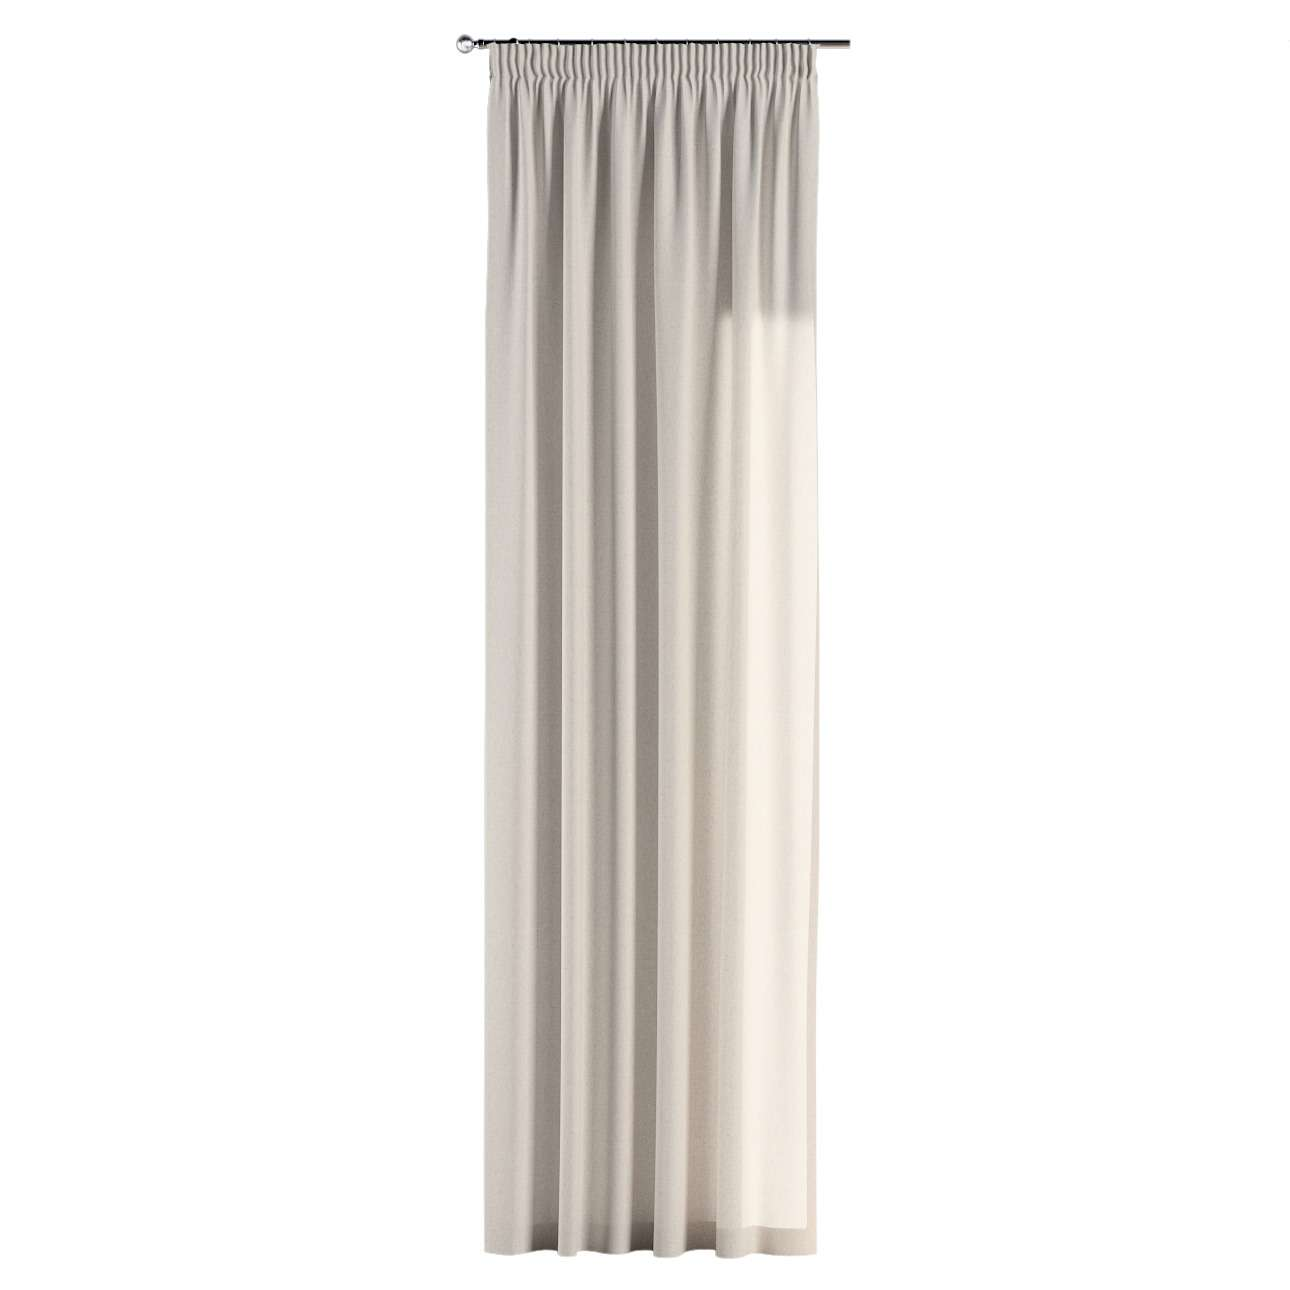 Pencil pleat curtains 130 x 260 cm (51 x 102 inch) in collection Loneta , fabric: 133-65